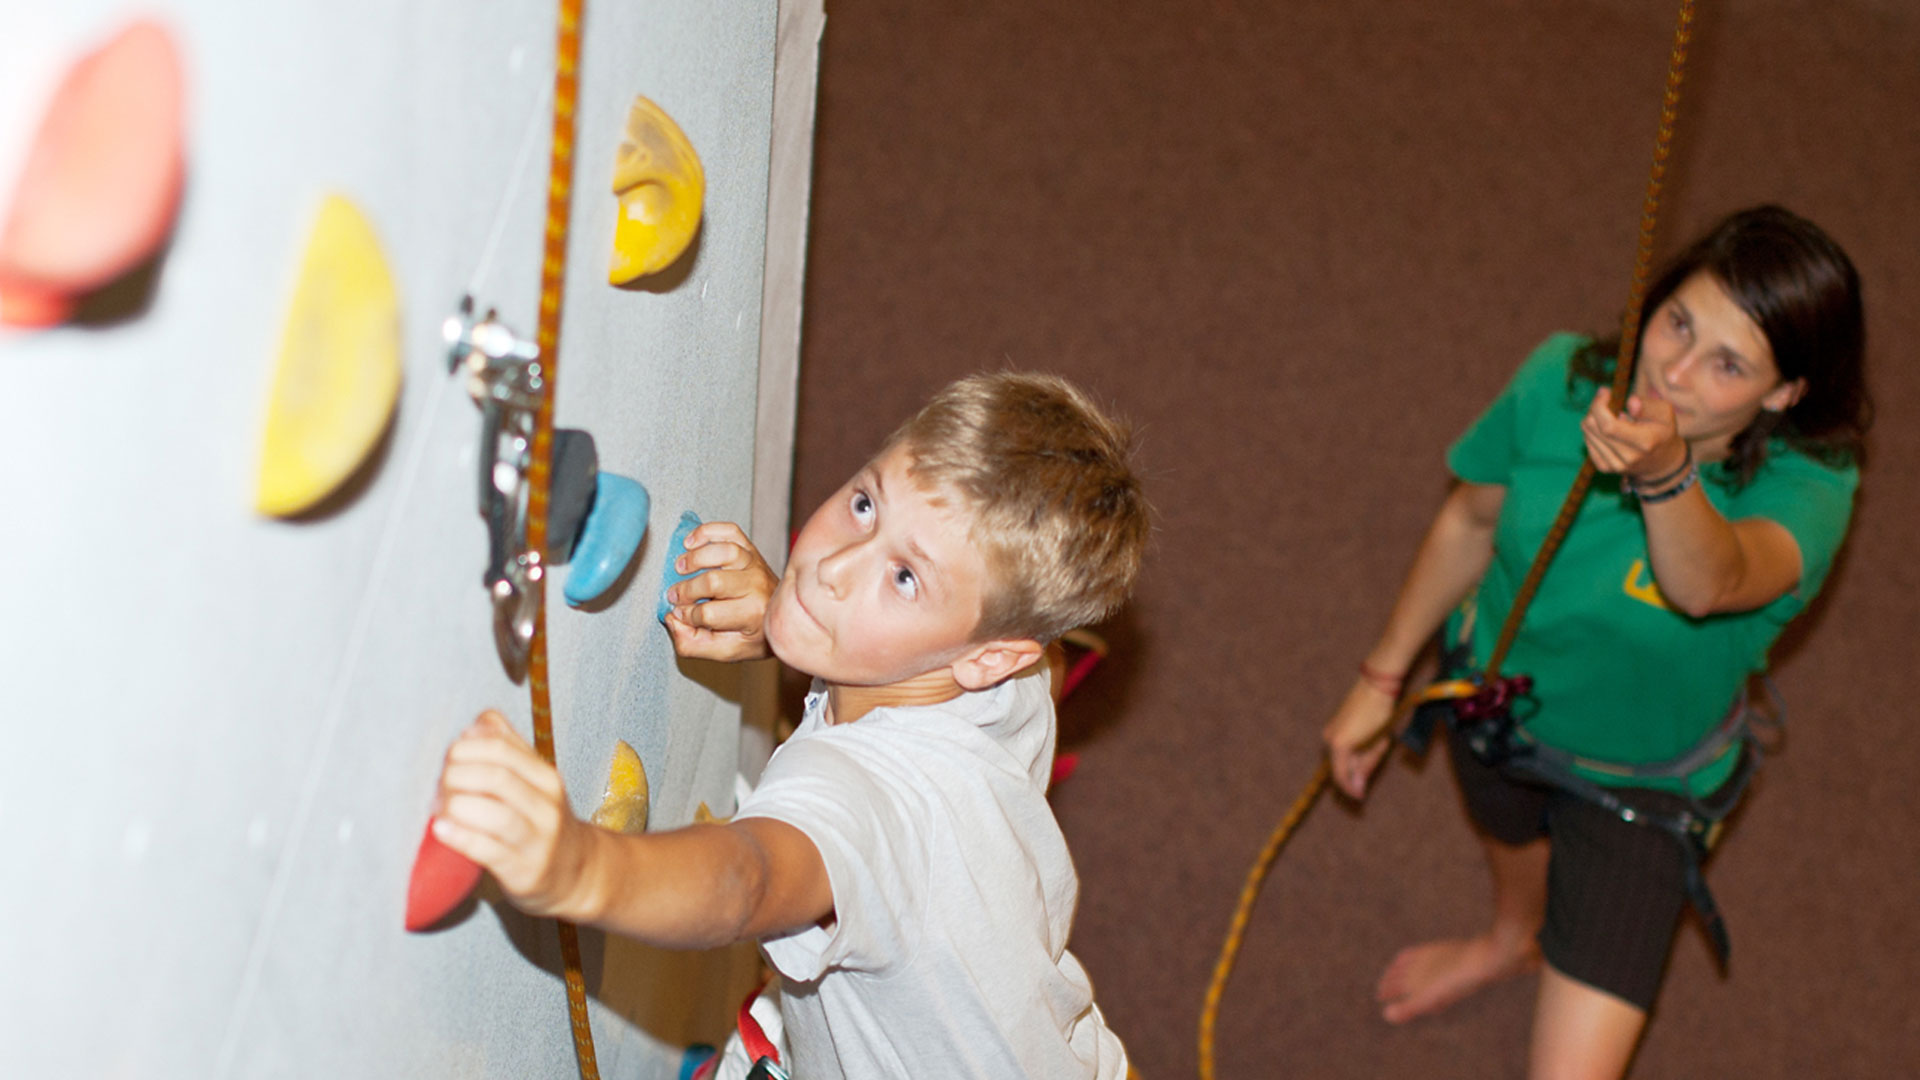 One of our students at the climbing wall